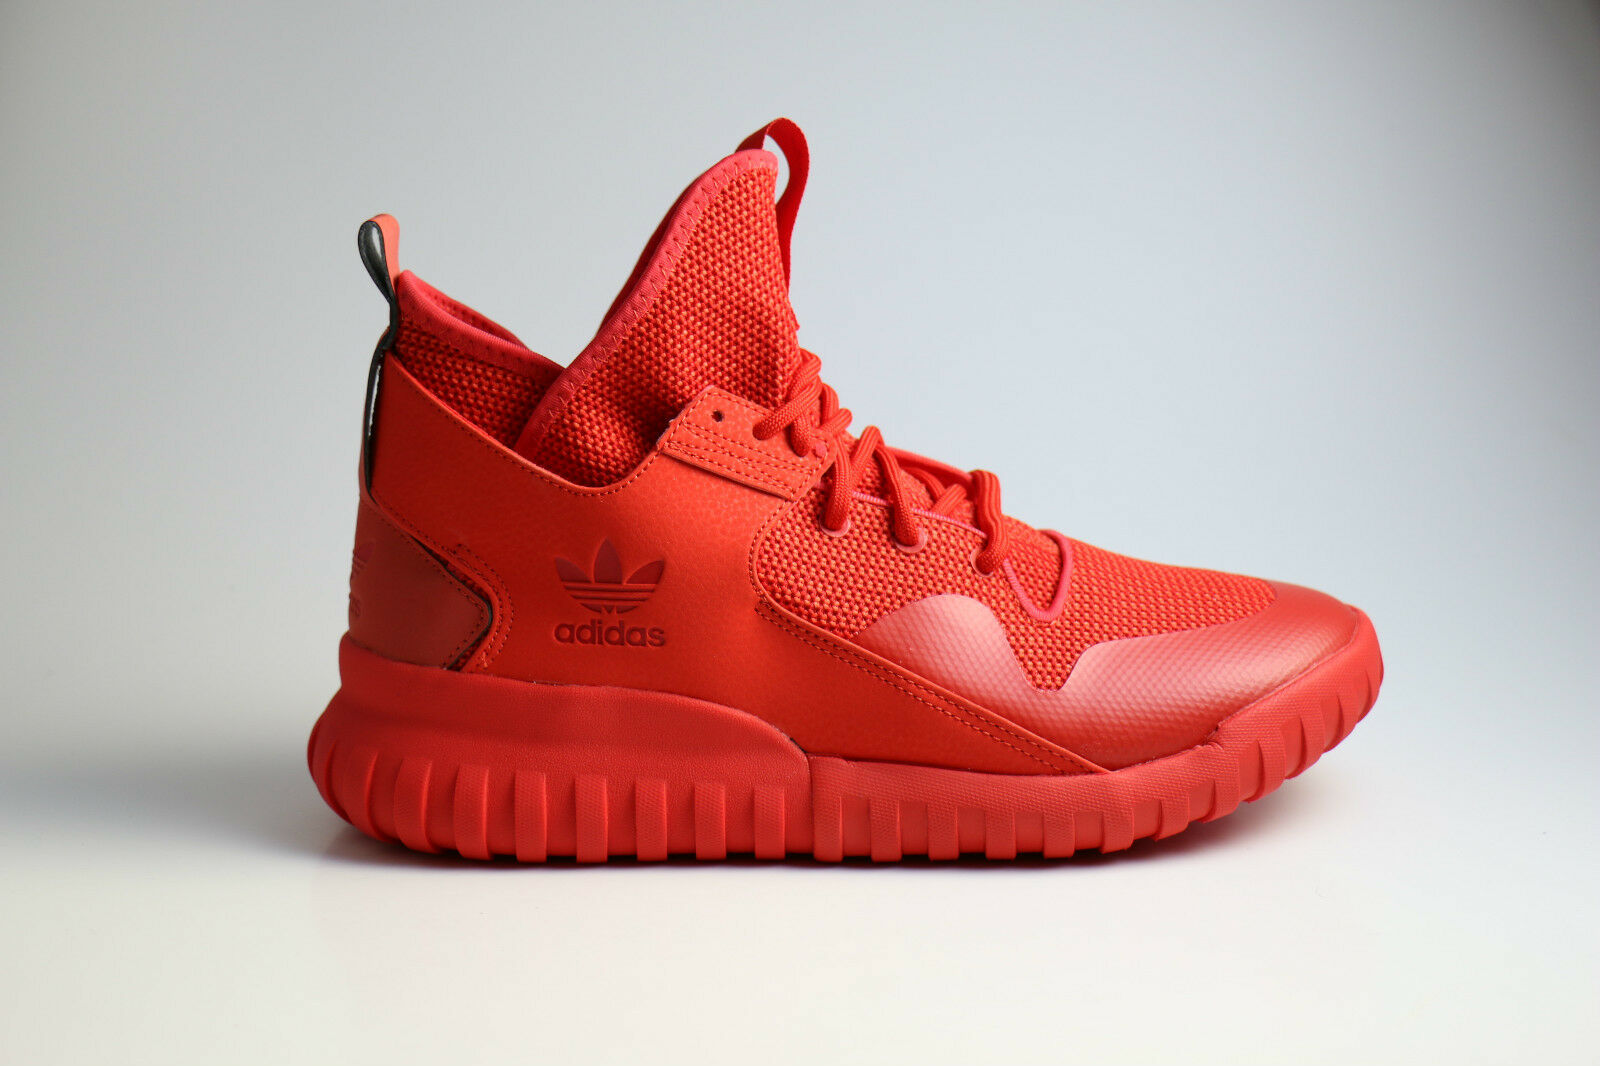 Adidas Tubular X Triple Red 8 9 10 11 41 42 42 2 3 43 1 3 44 44 2 3 45 46 Yeezy